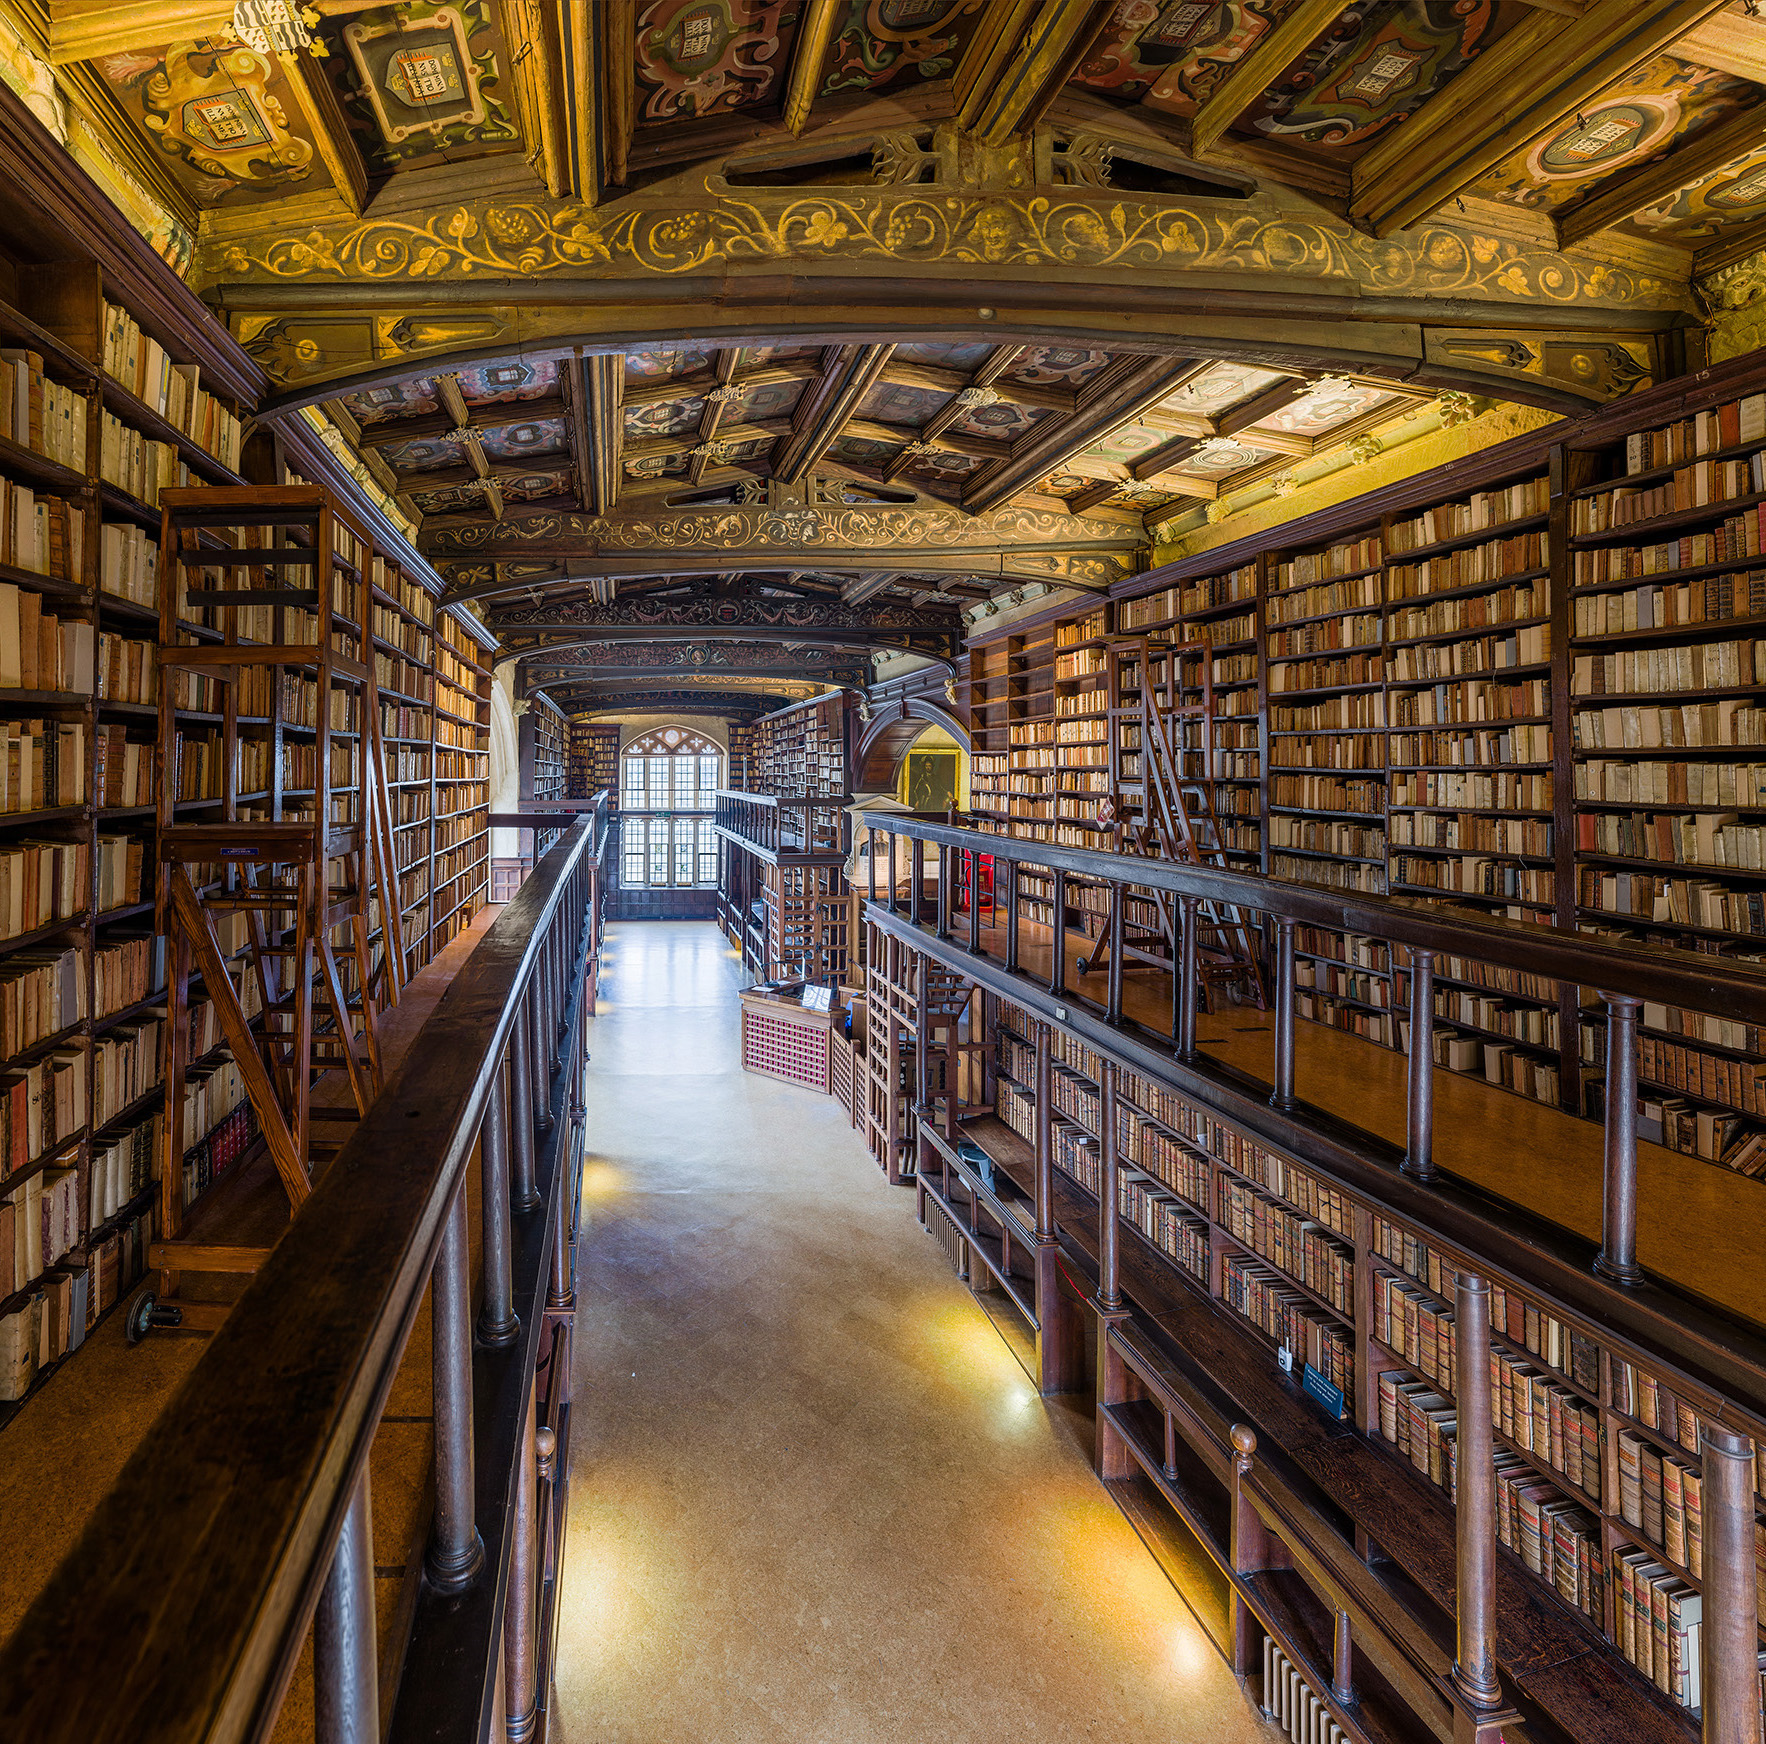 Duke_Humfrey's_Library_Interior_5,_Bodleian_Library,_Oxford,_UK_-_Diliff.jpg